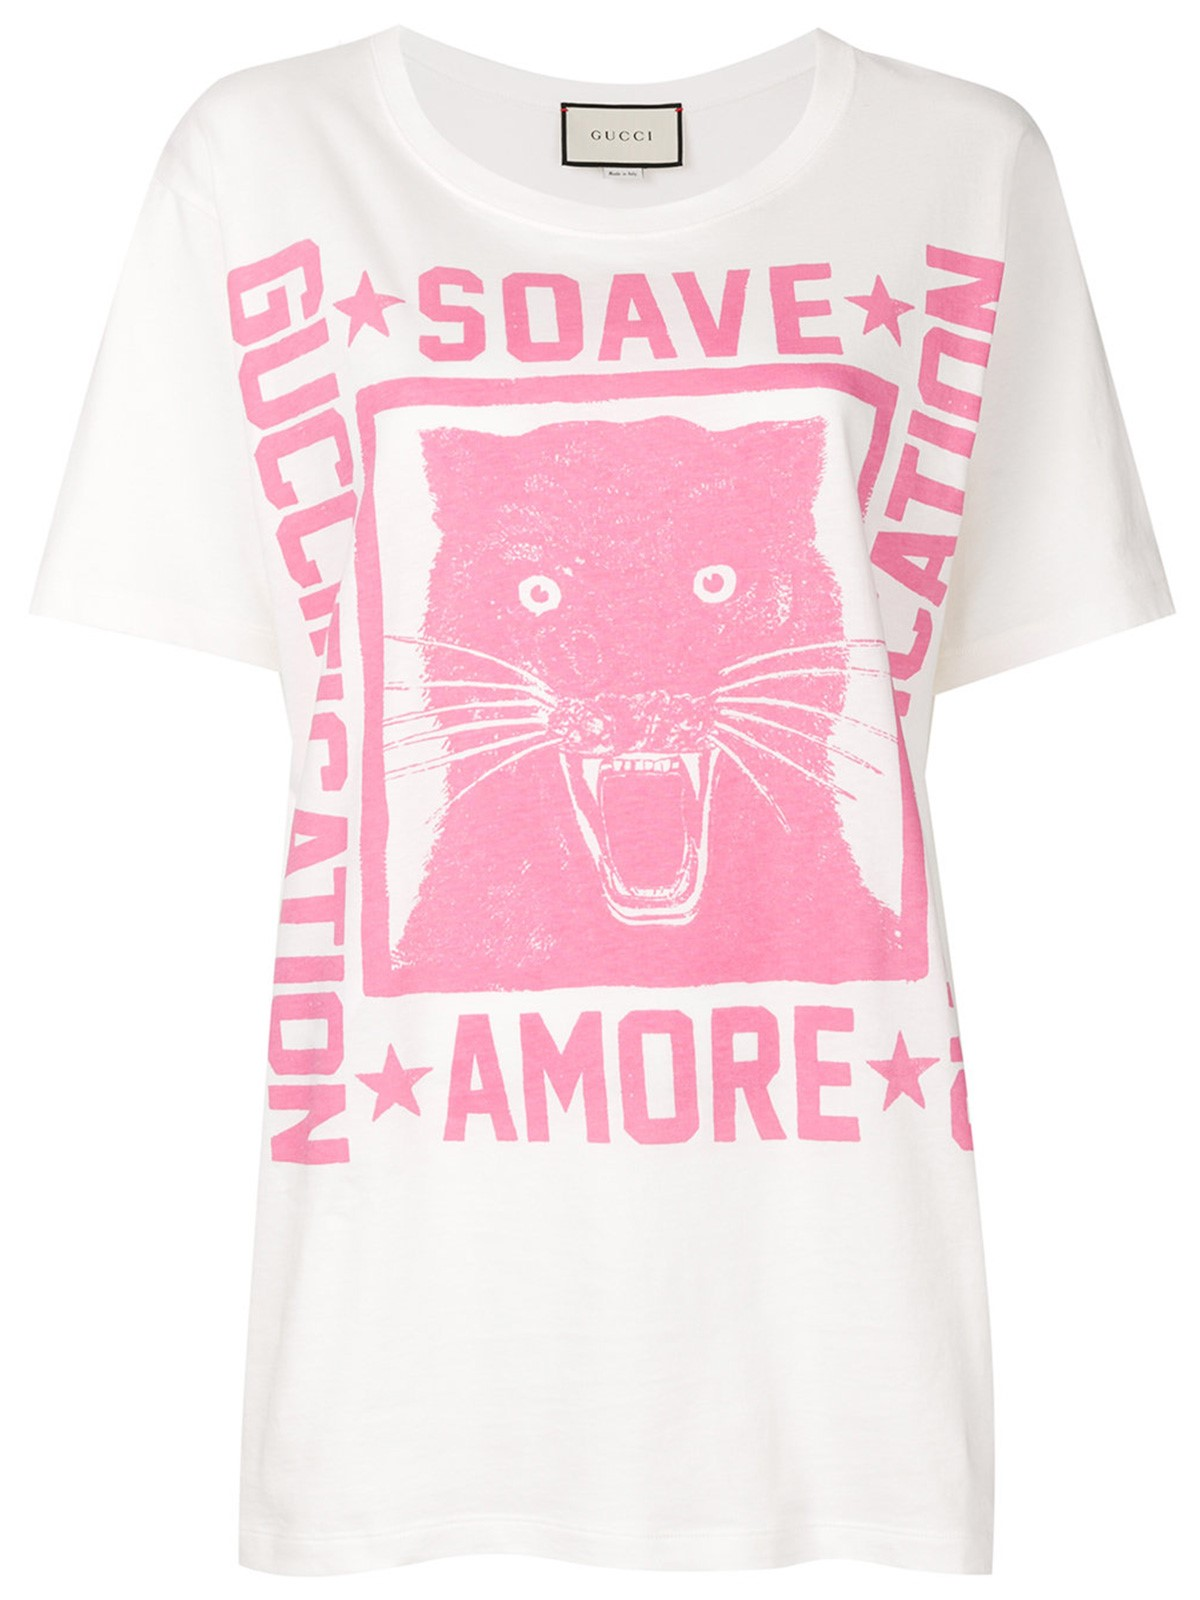 a3c5e7ea390 gucci SOAVE AMORE GUCCIFICATION PRINT T-SHIRT available on ...